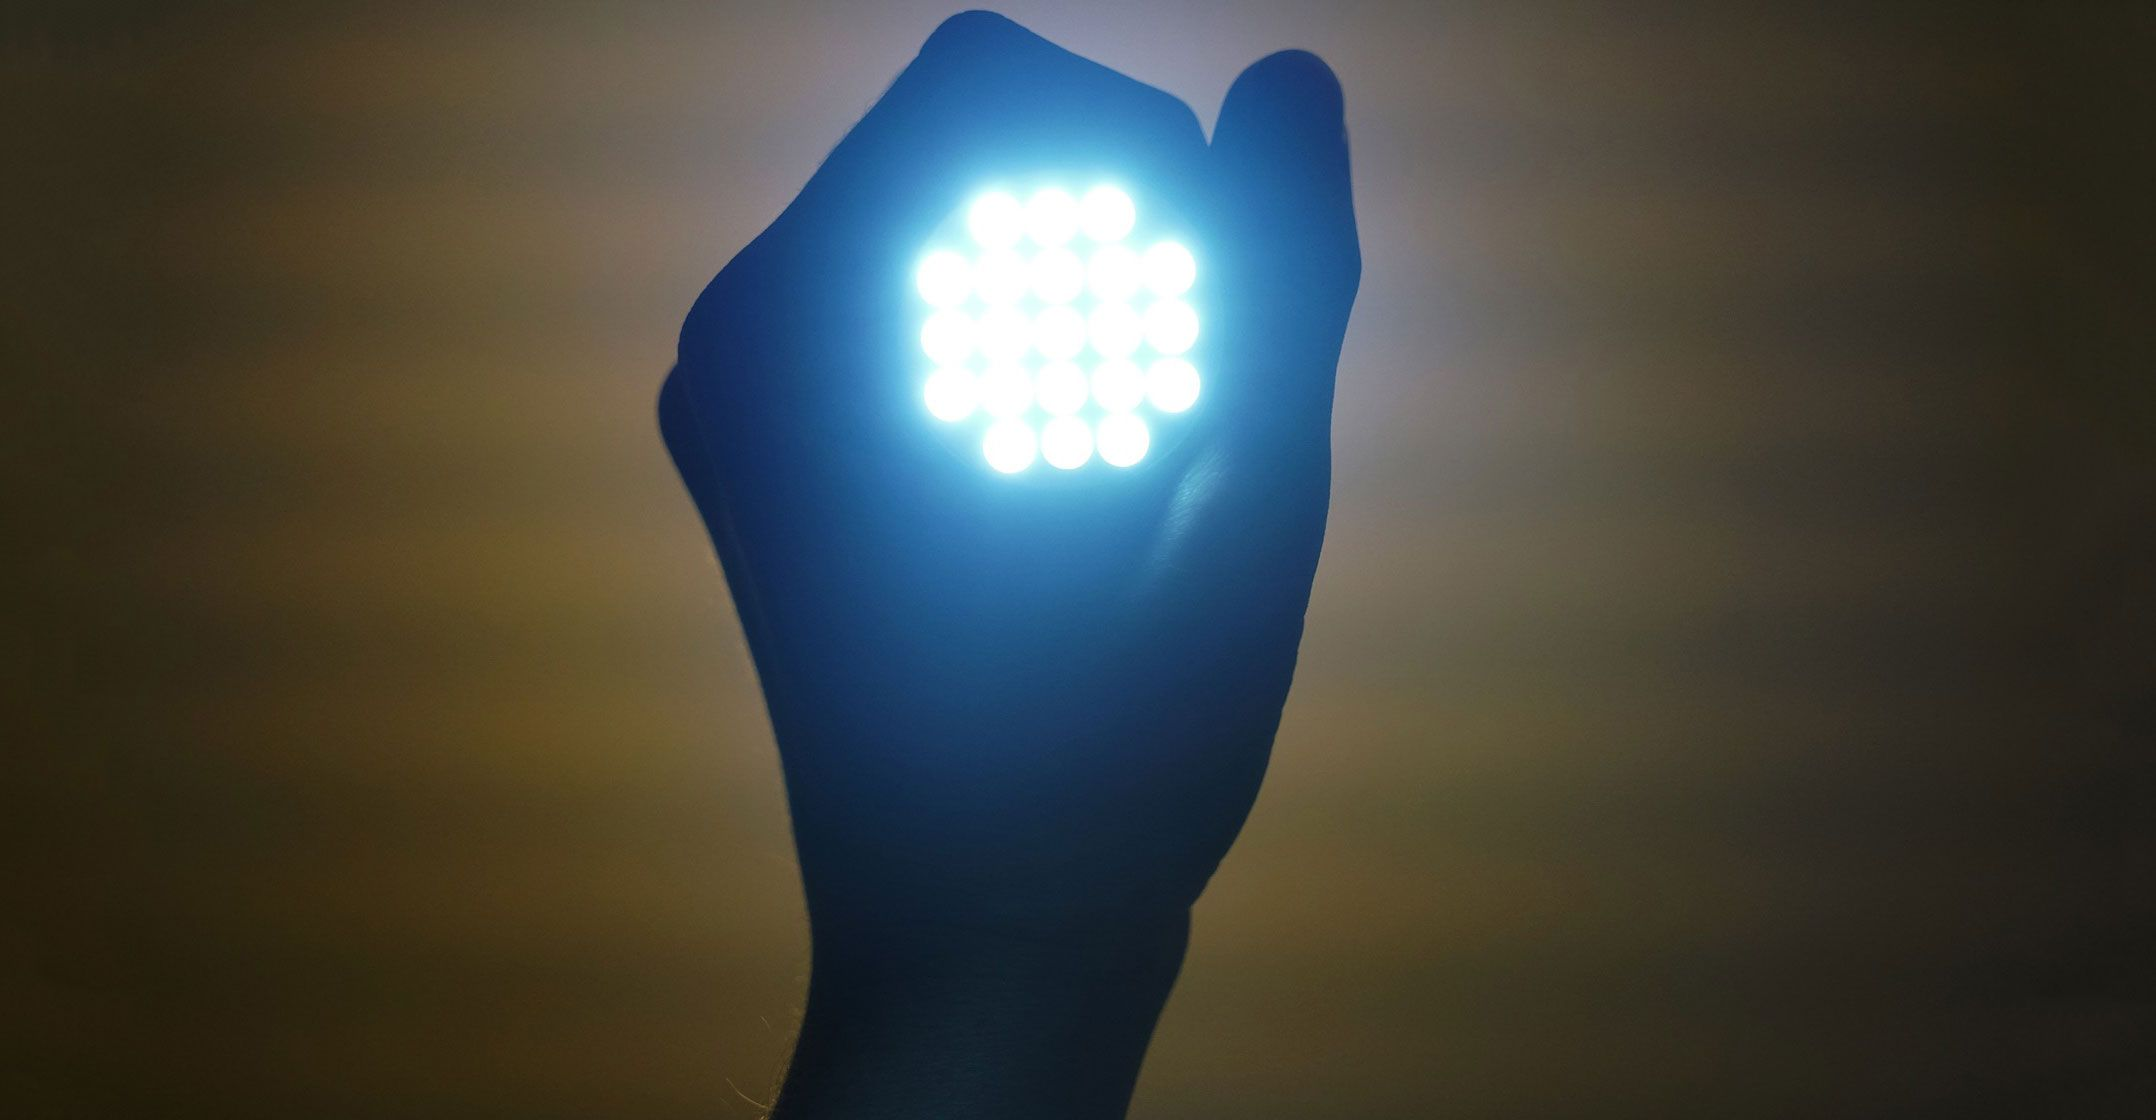 How To Reduce Your Electricity Bill Permanently Techcentral In 2020 Led Lights Bay Lights Work Lights